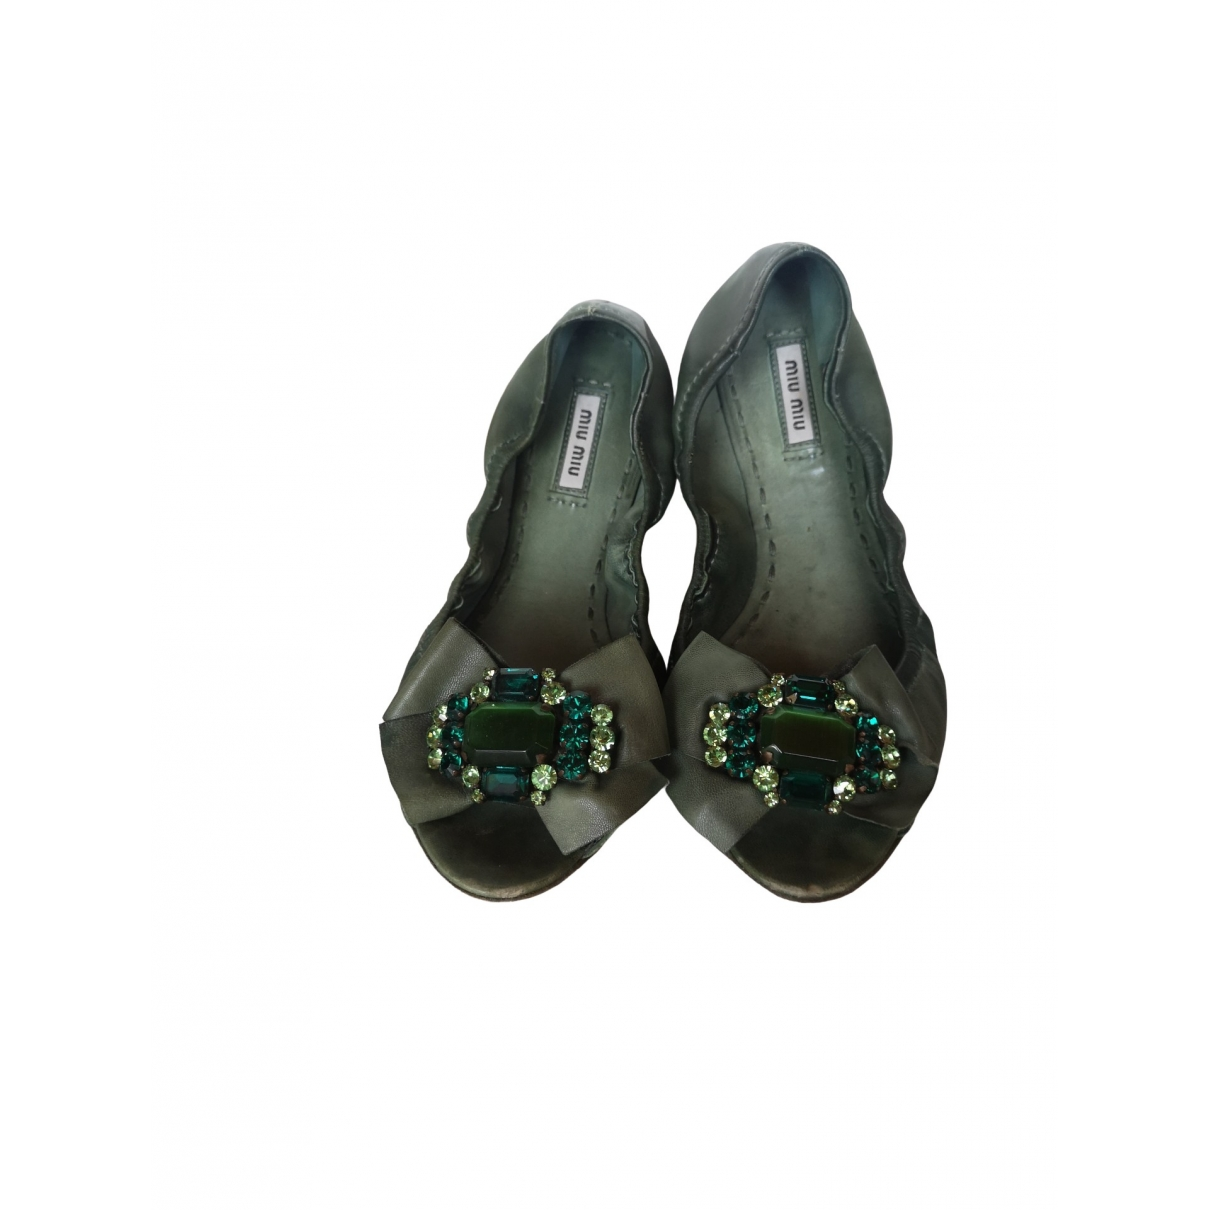 Miu Miu \N Green Leather Ballet flats for Women 41 EU